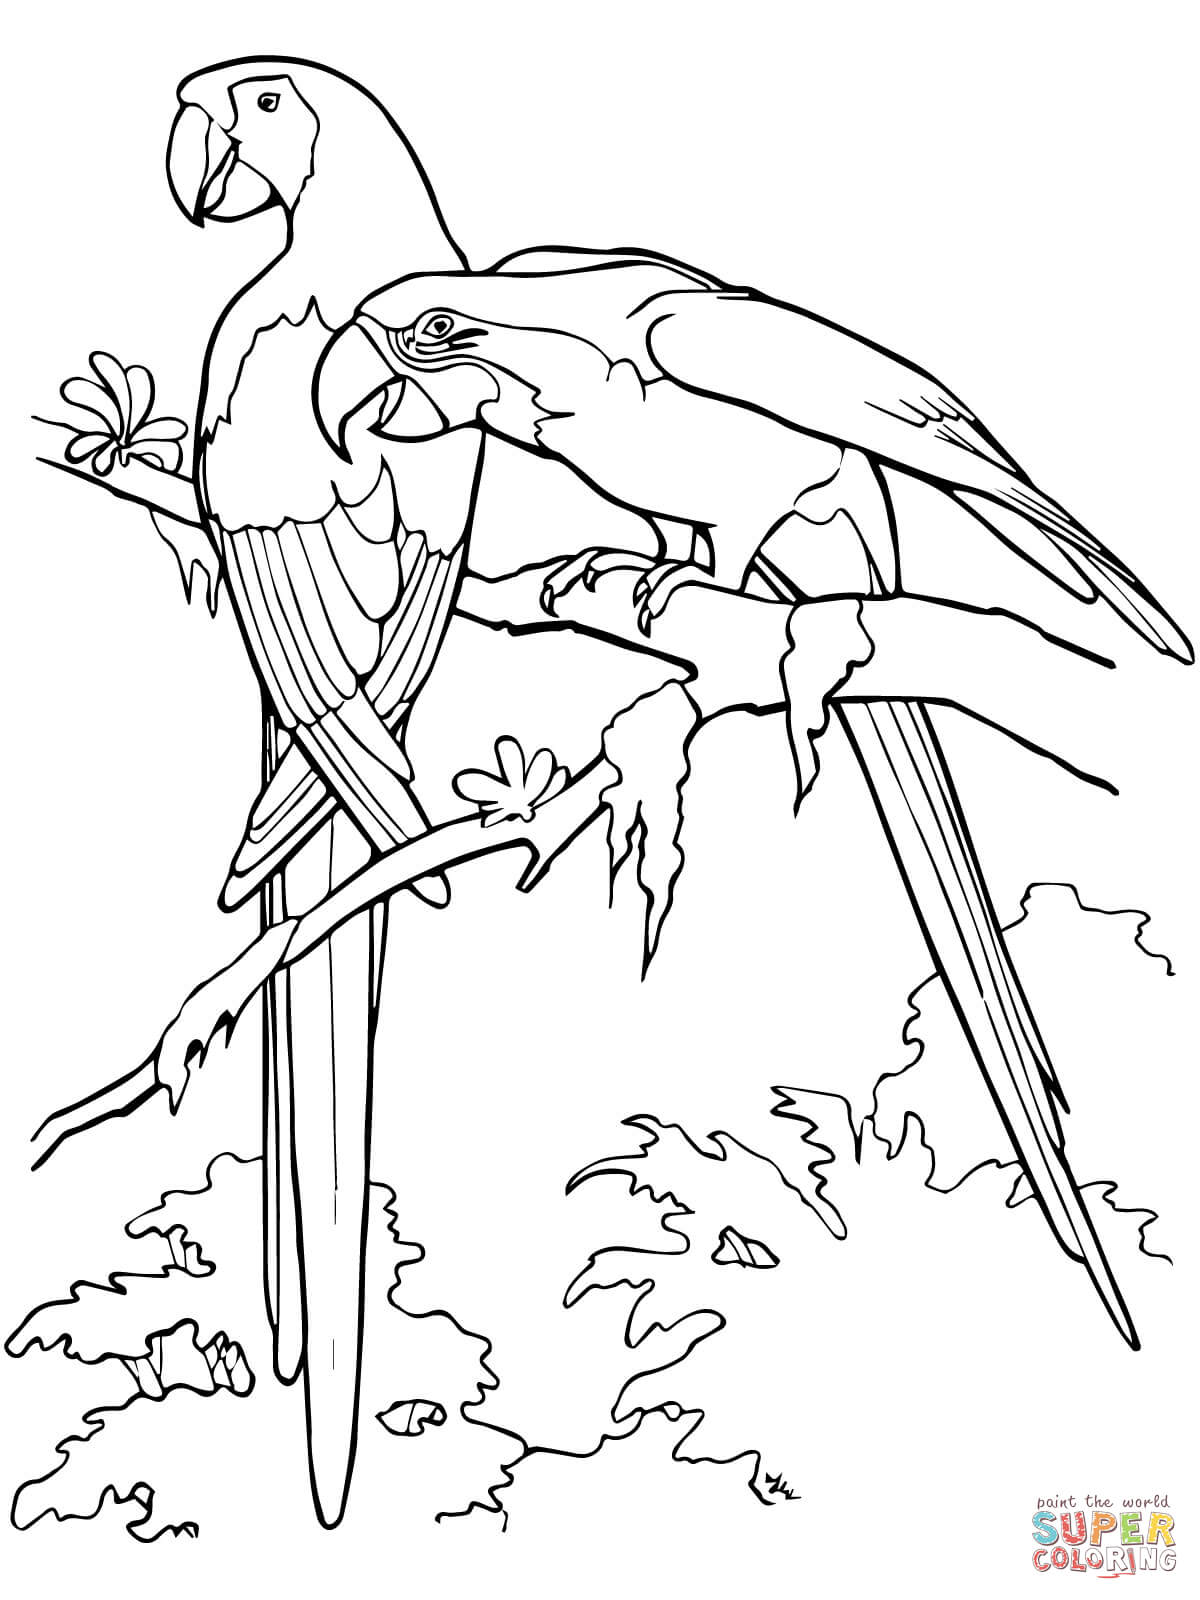 Blue-and-yellow Macaw clipart Coloring Pages coloring Macaw Coloring